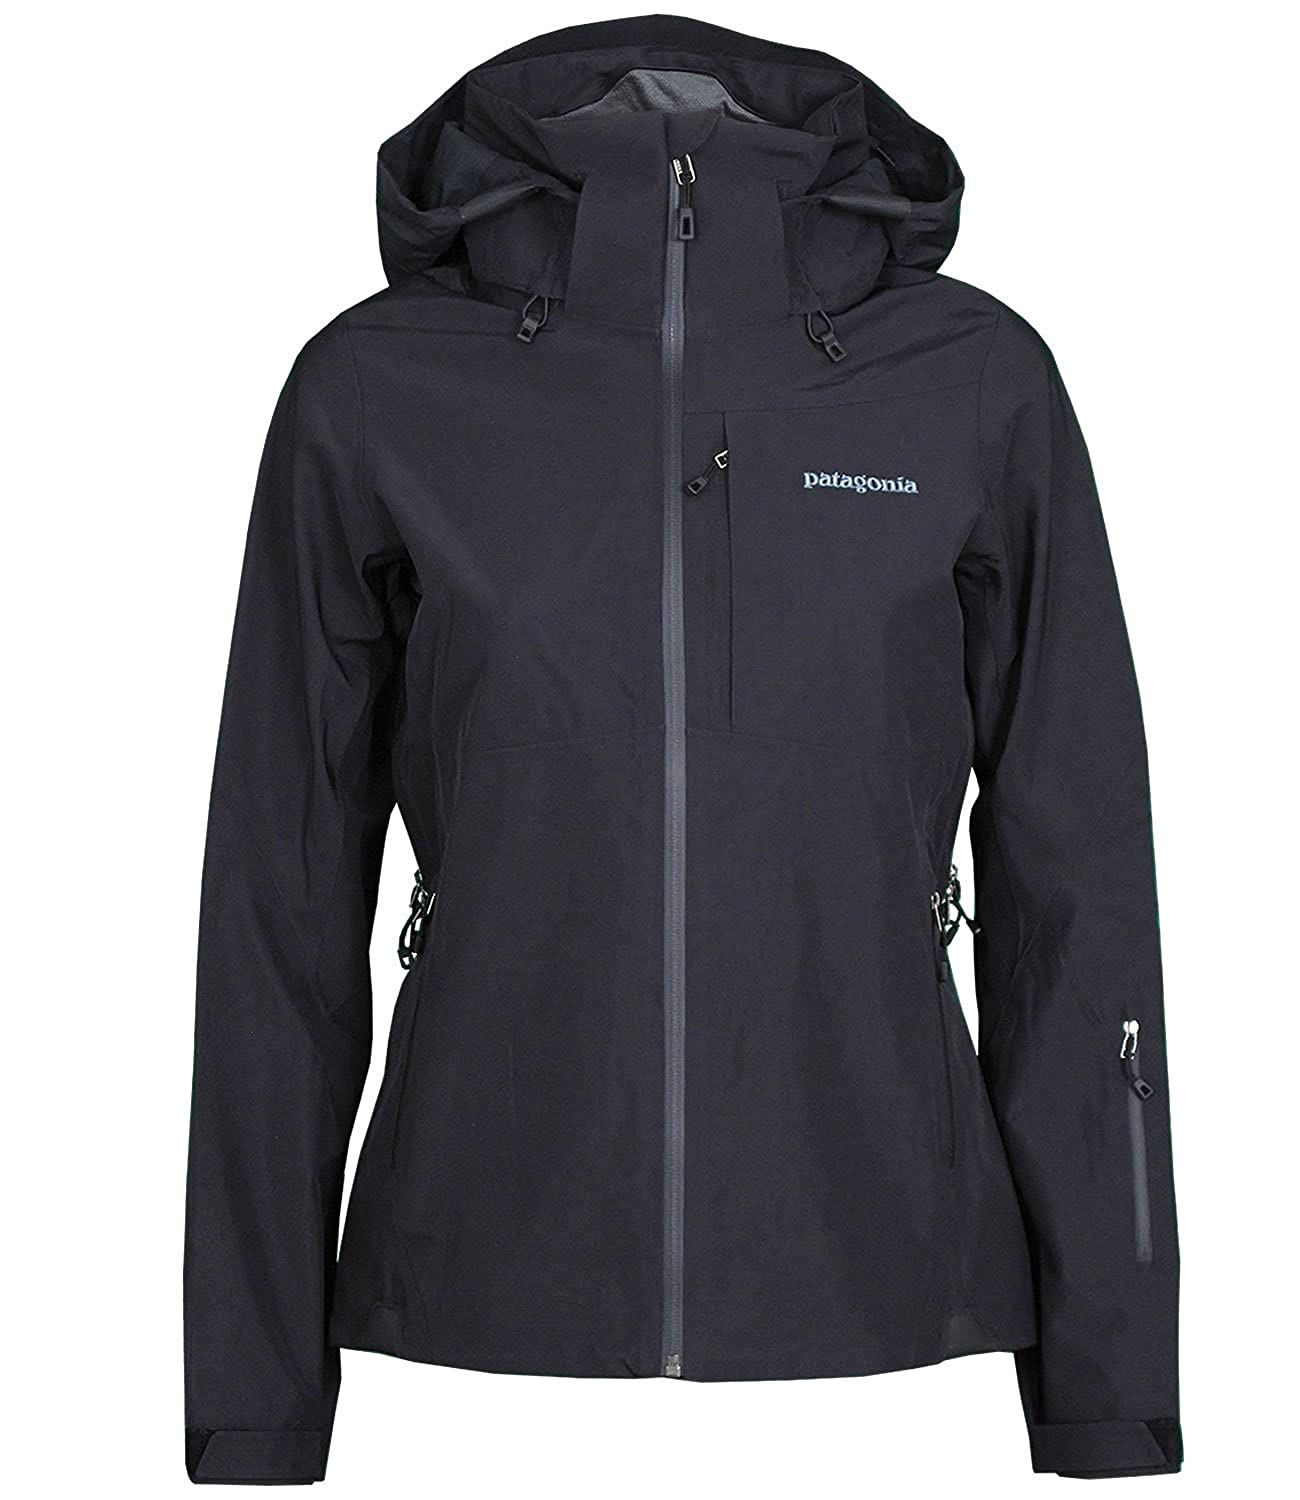 Patagonia Damen Powder Bowl Jacket Gore-Tex® Skijacke Wintersportjacke